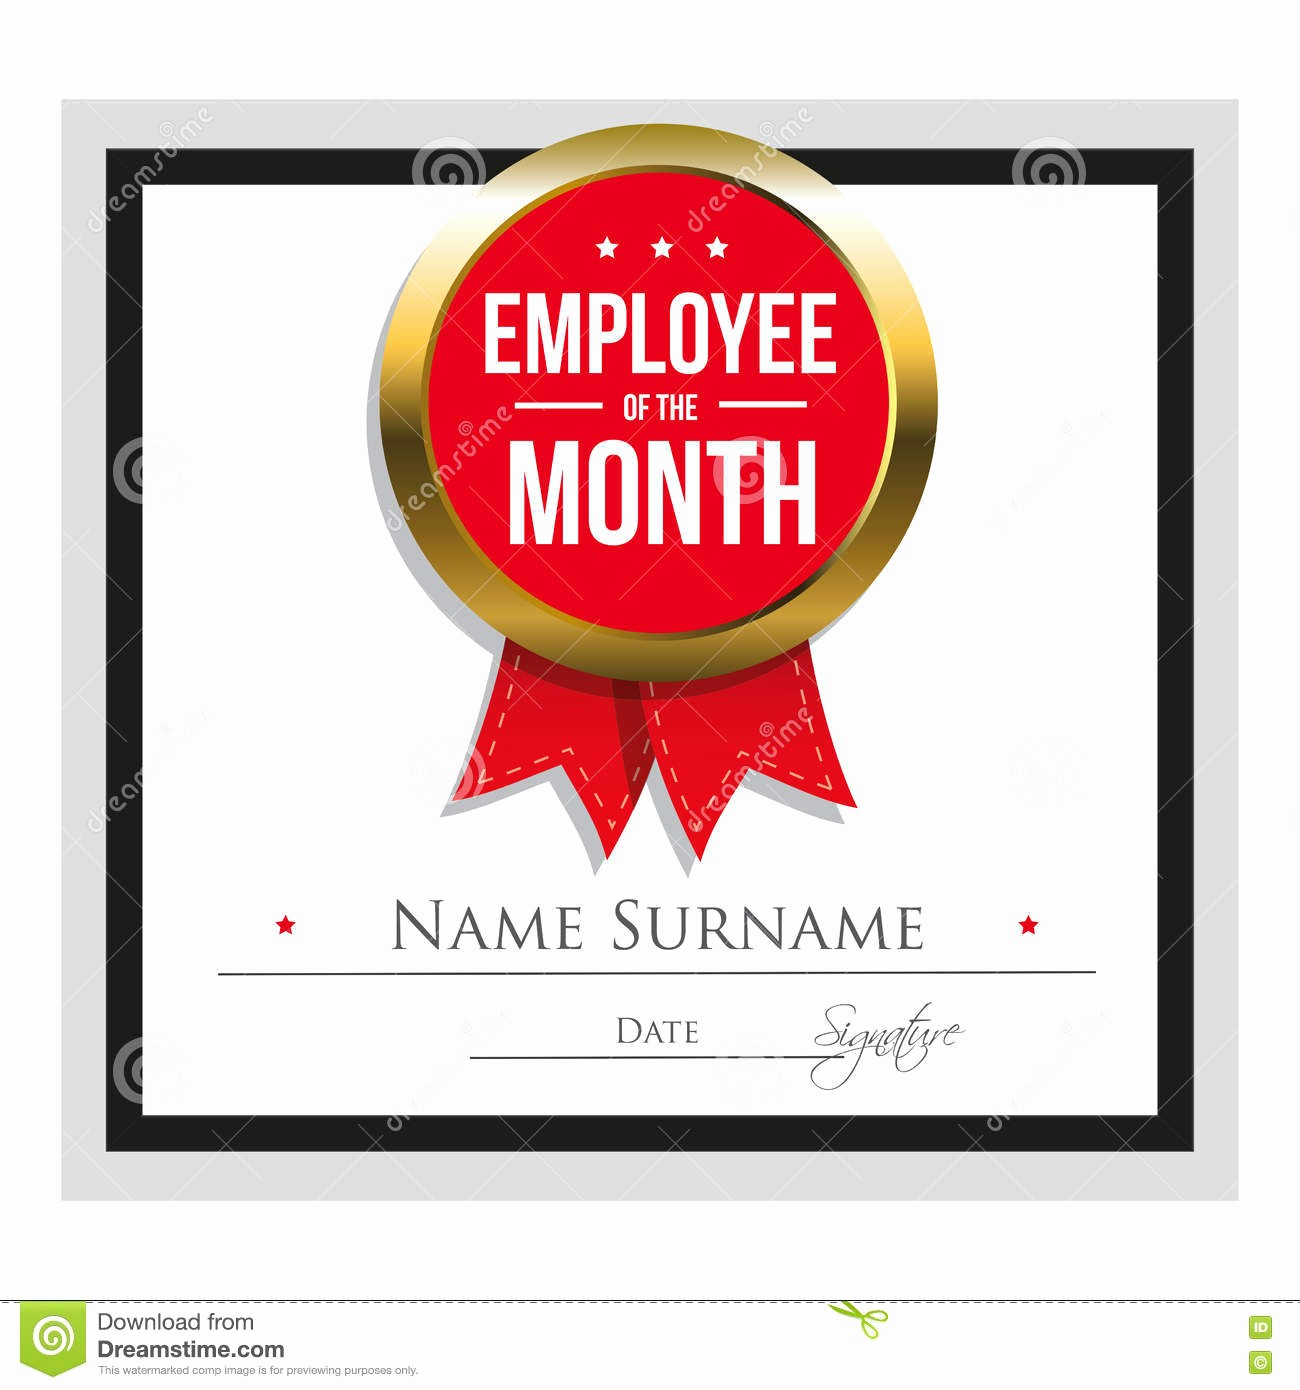 Employee Of the Month Free Fresh Employee the Month Certificate Template Stock Vector